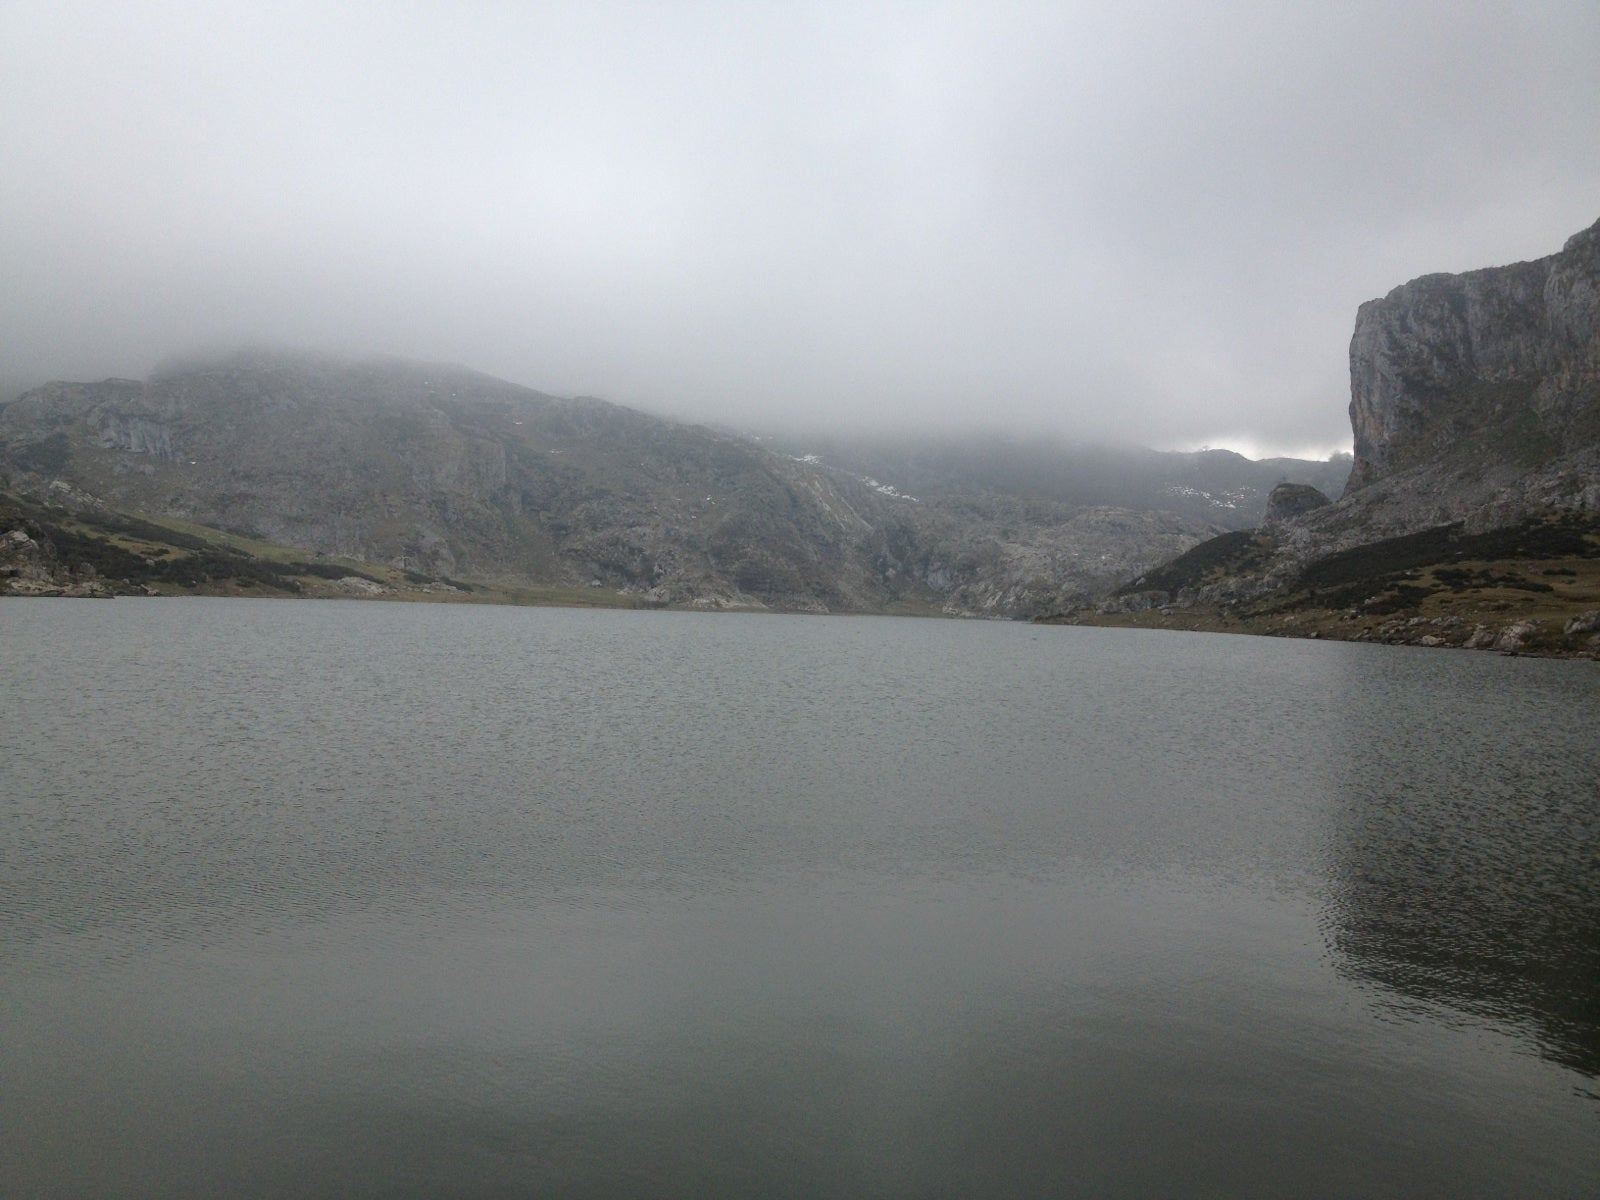 Water in The Lakes of Covadonga - Enol and Ercina lakes